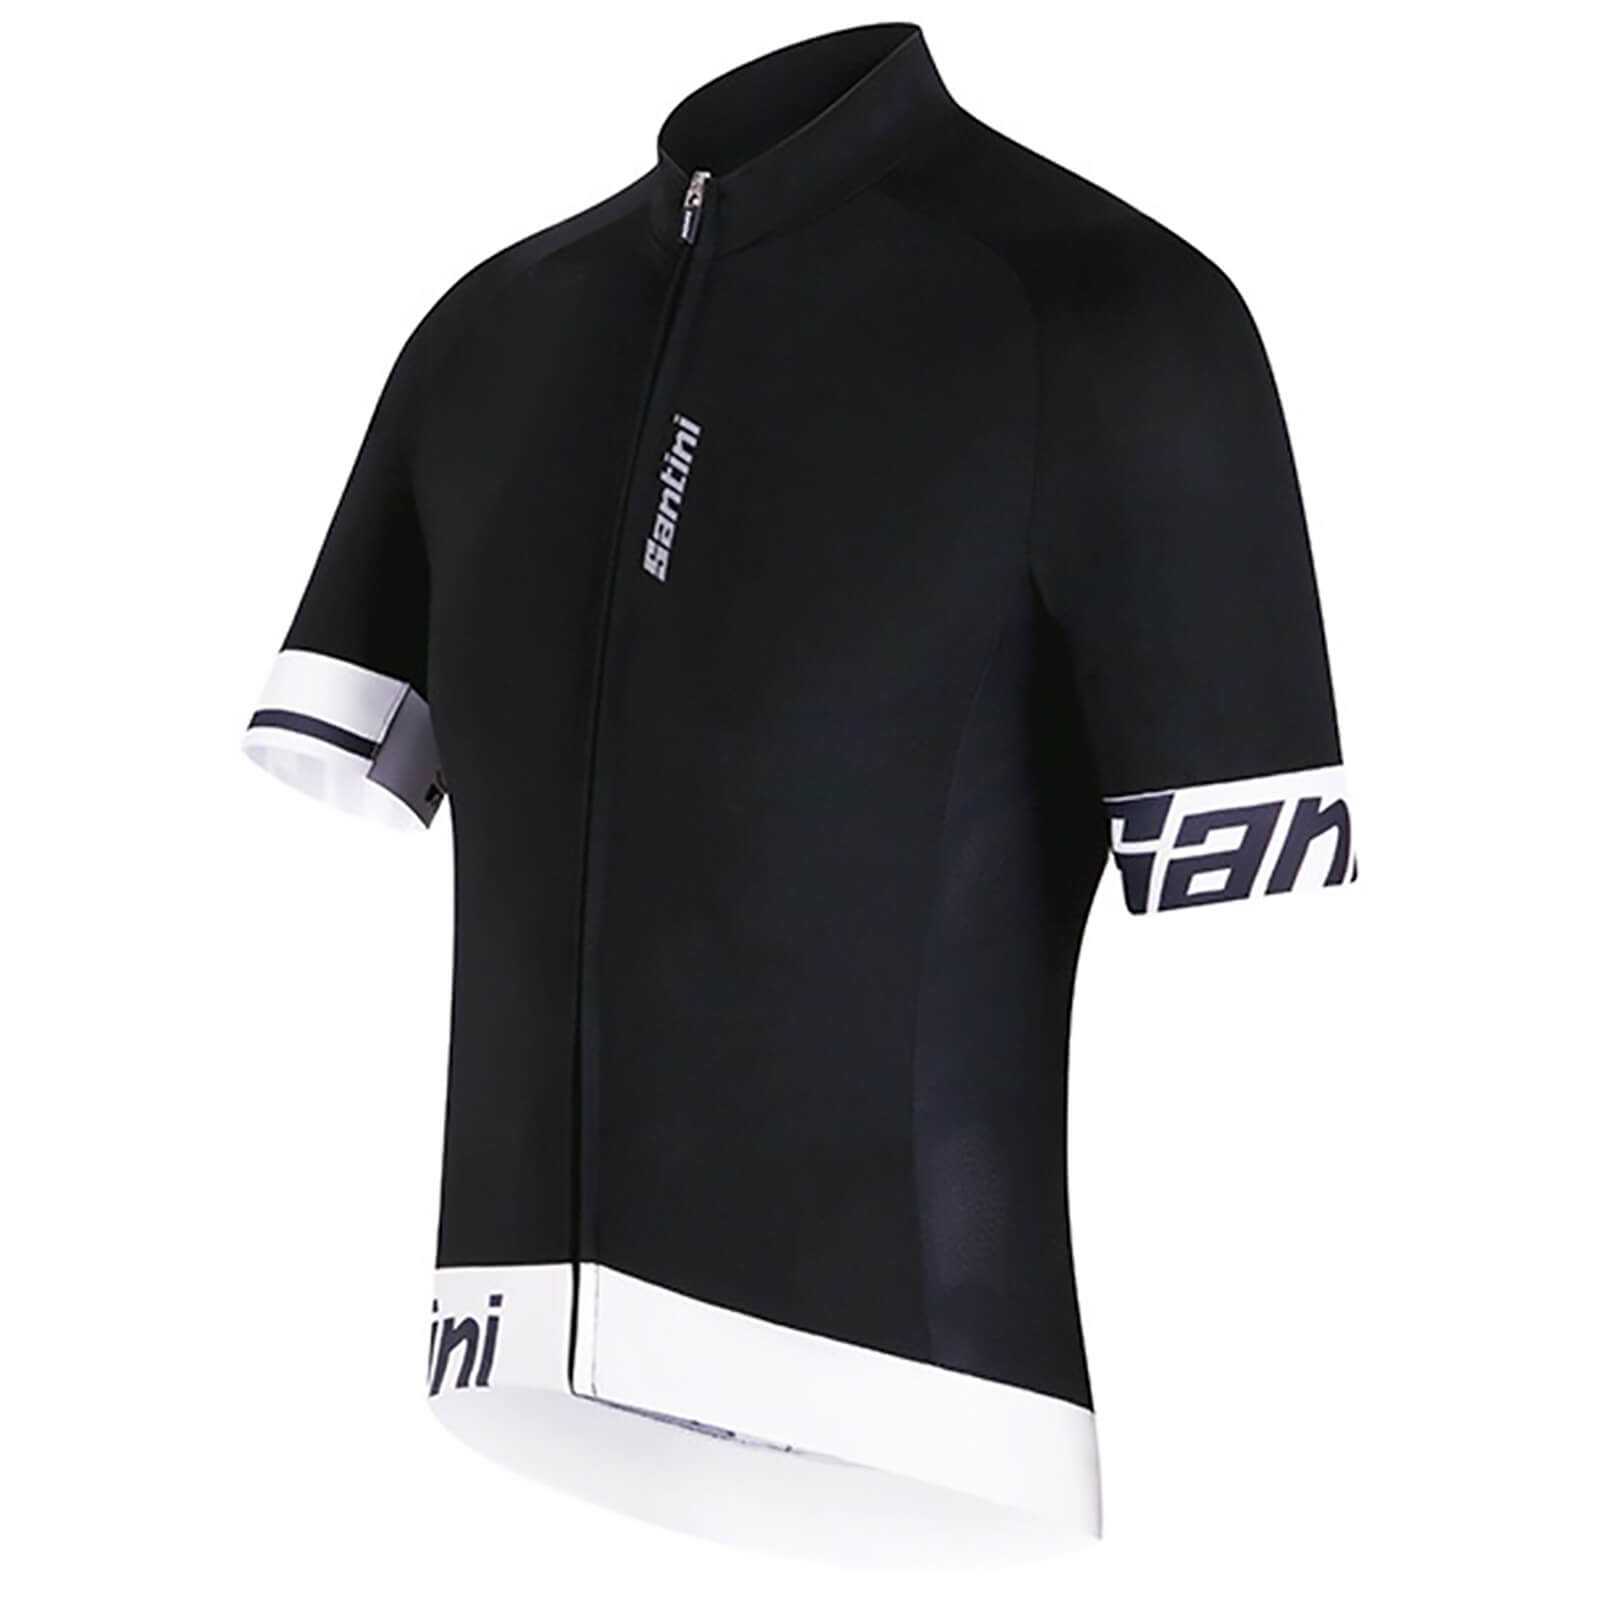 Santini Sleek 2.0 Aero Jersey - White